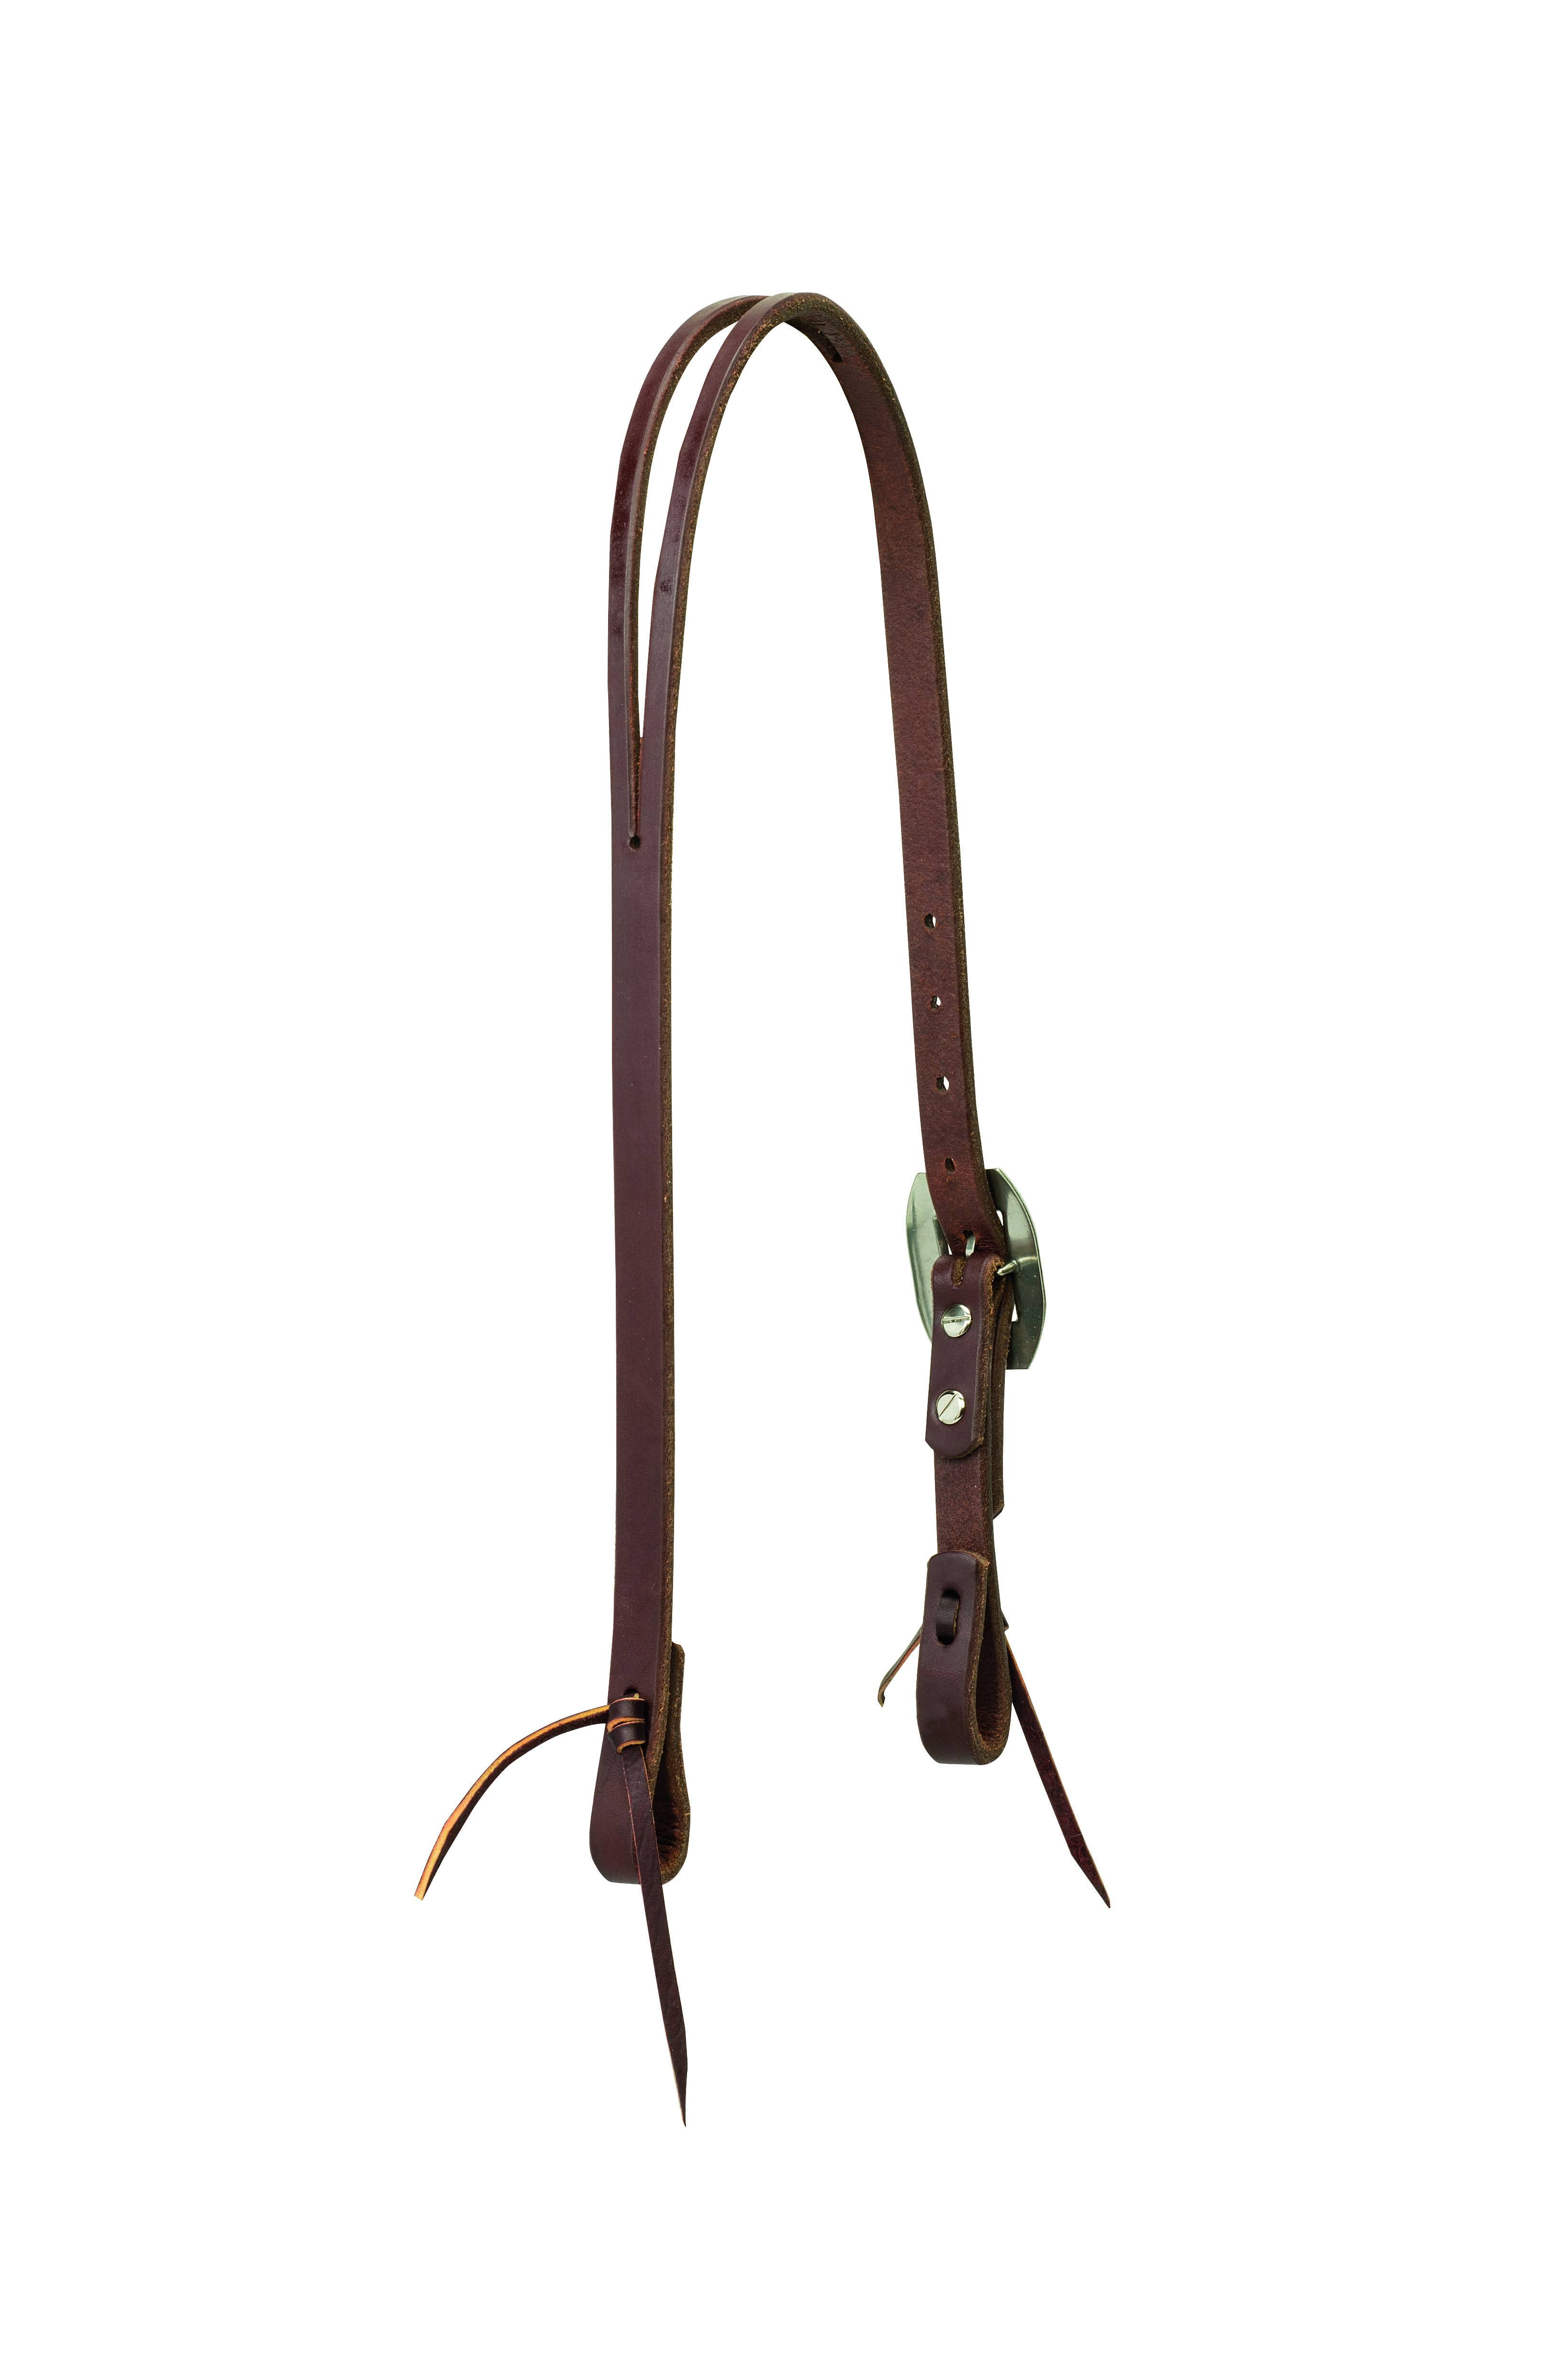 Weaver Working Cowboy Slit Ear Rope Edge Headstall